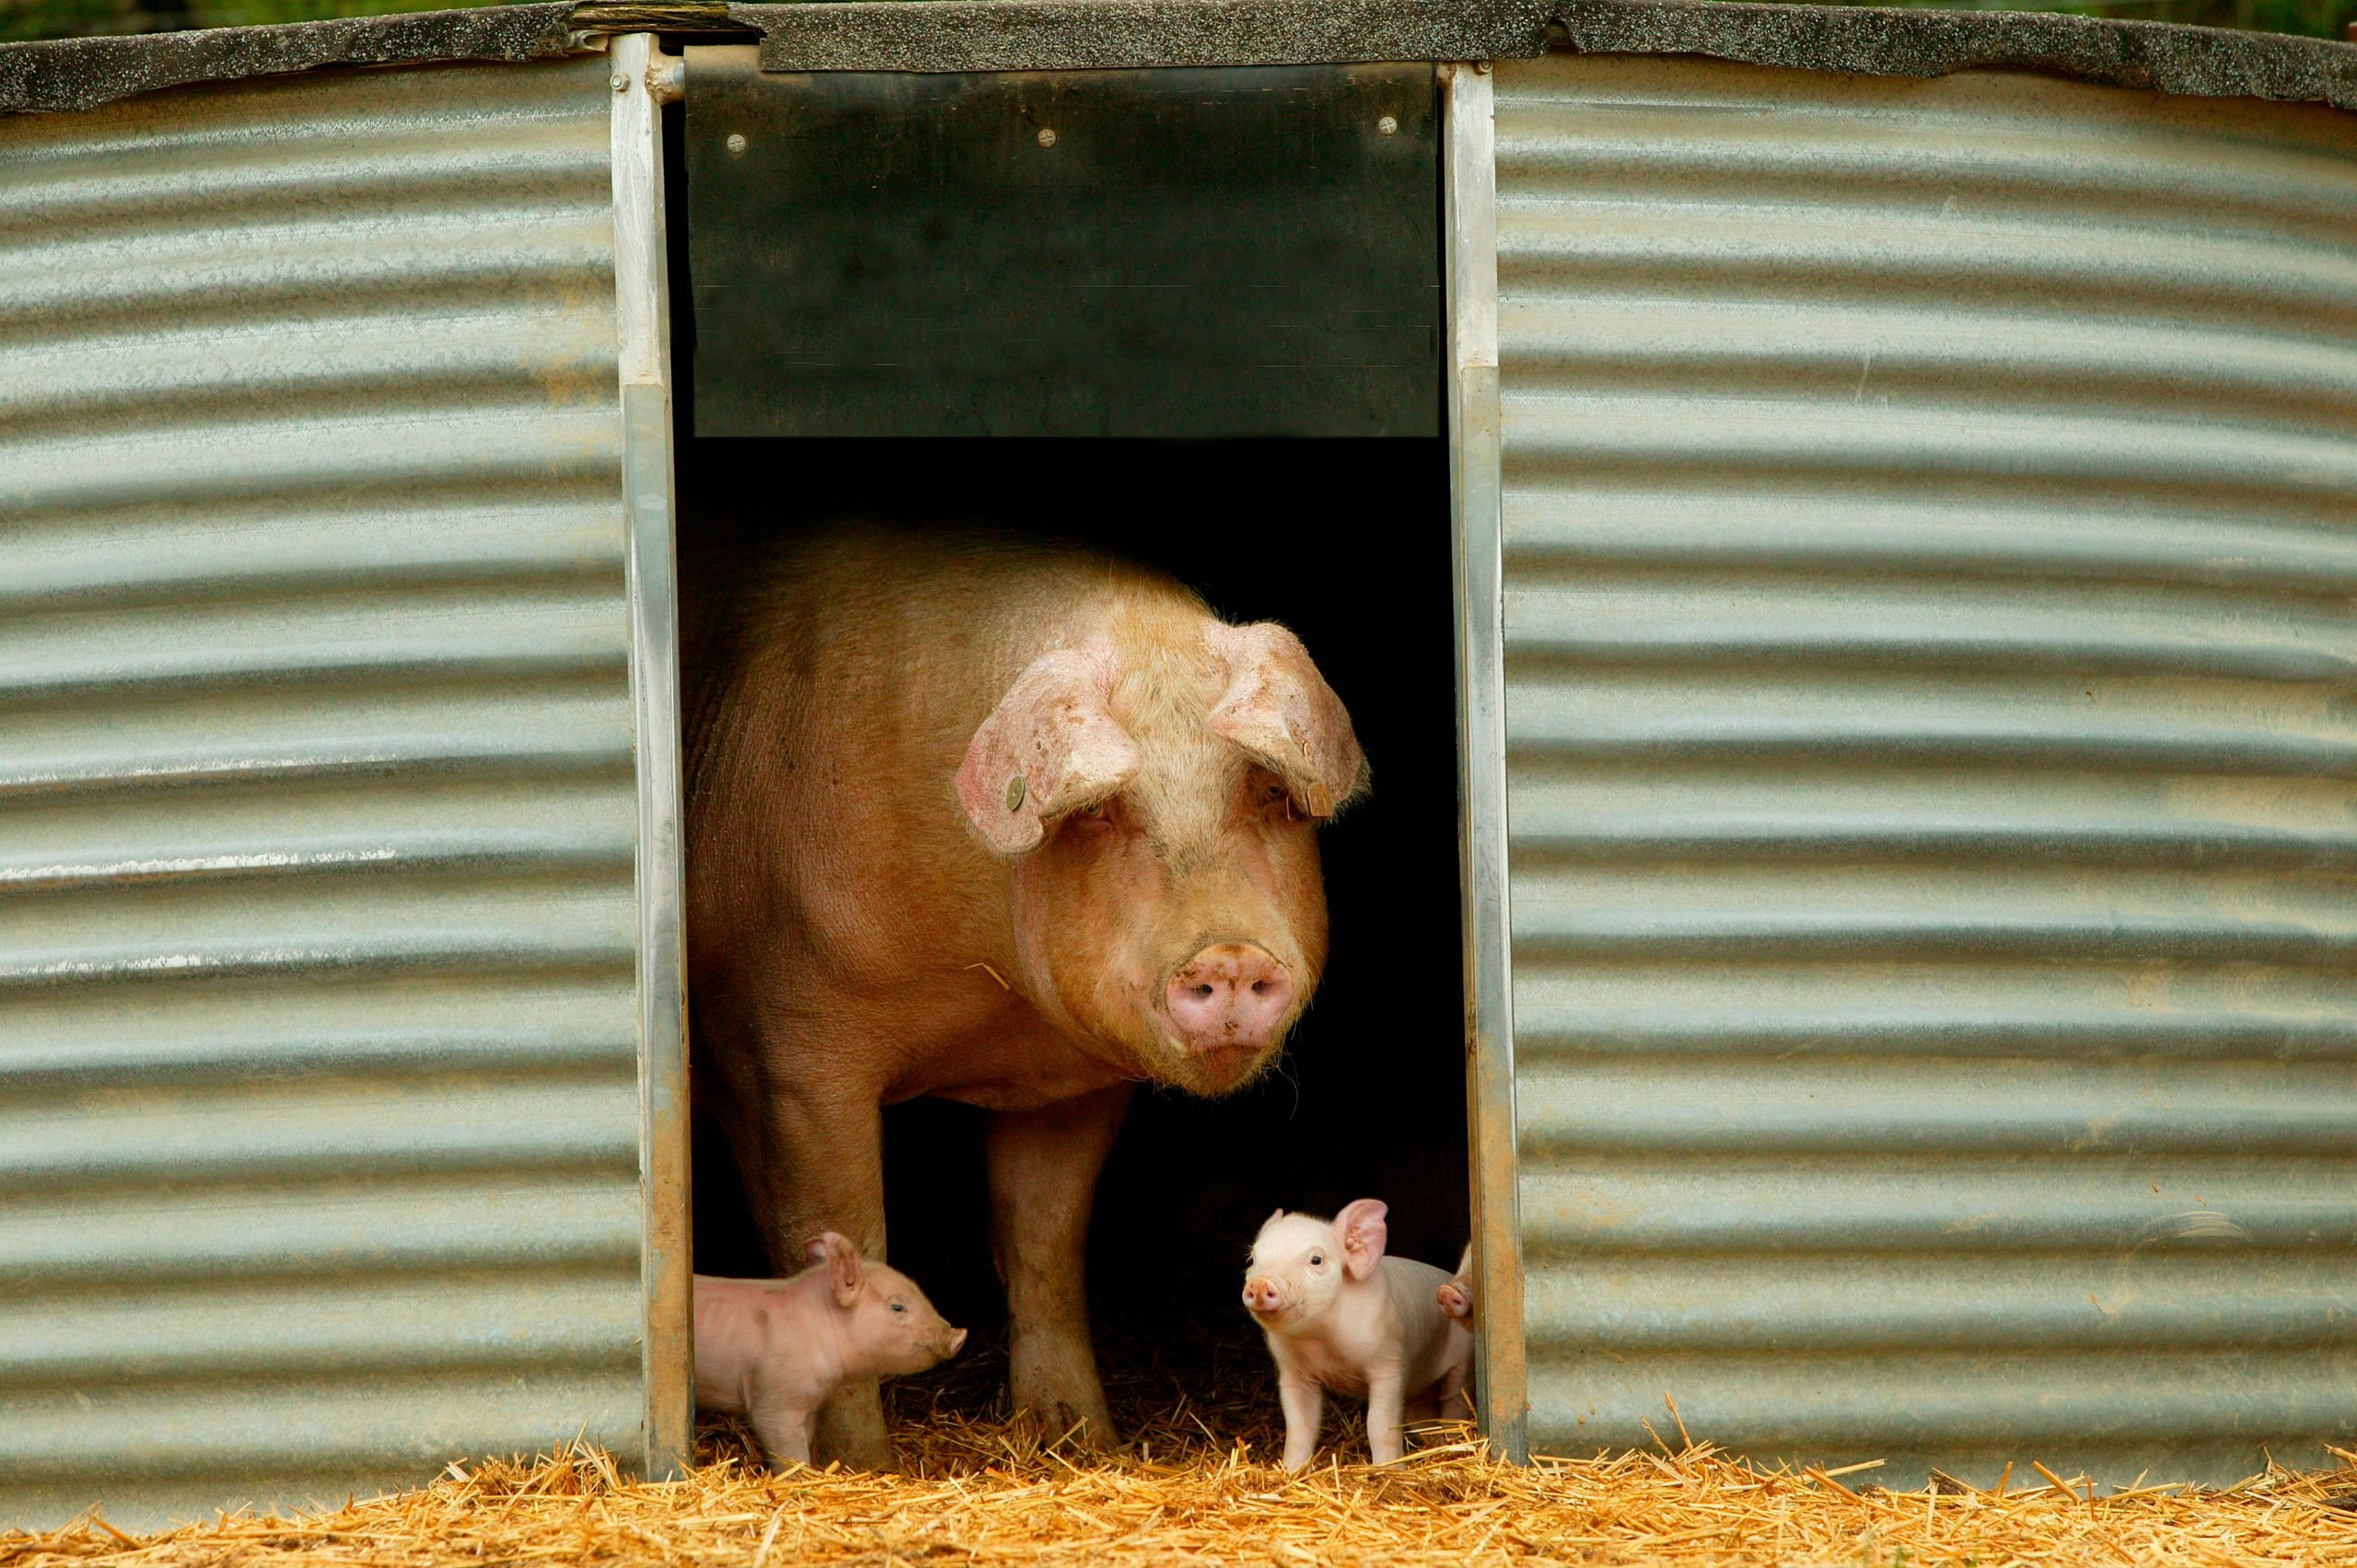 Large White pig and two piglets stand in a barn doorway